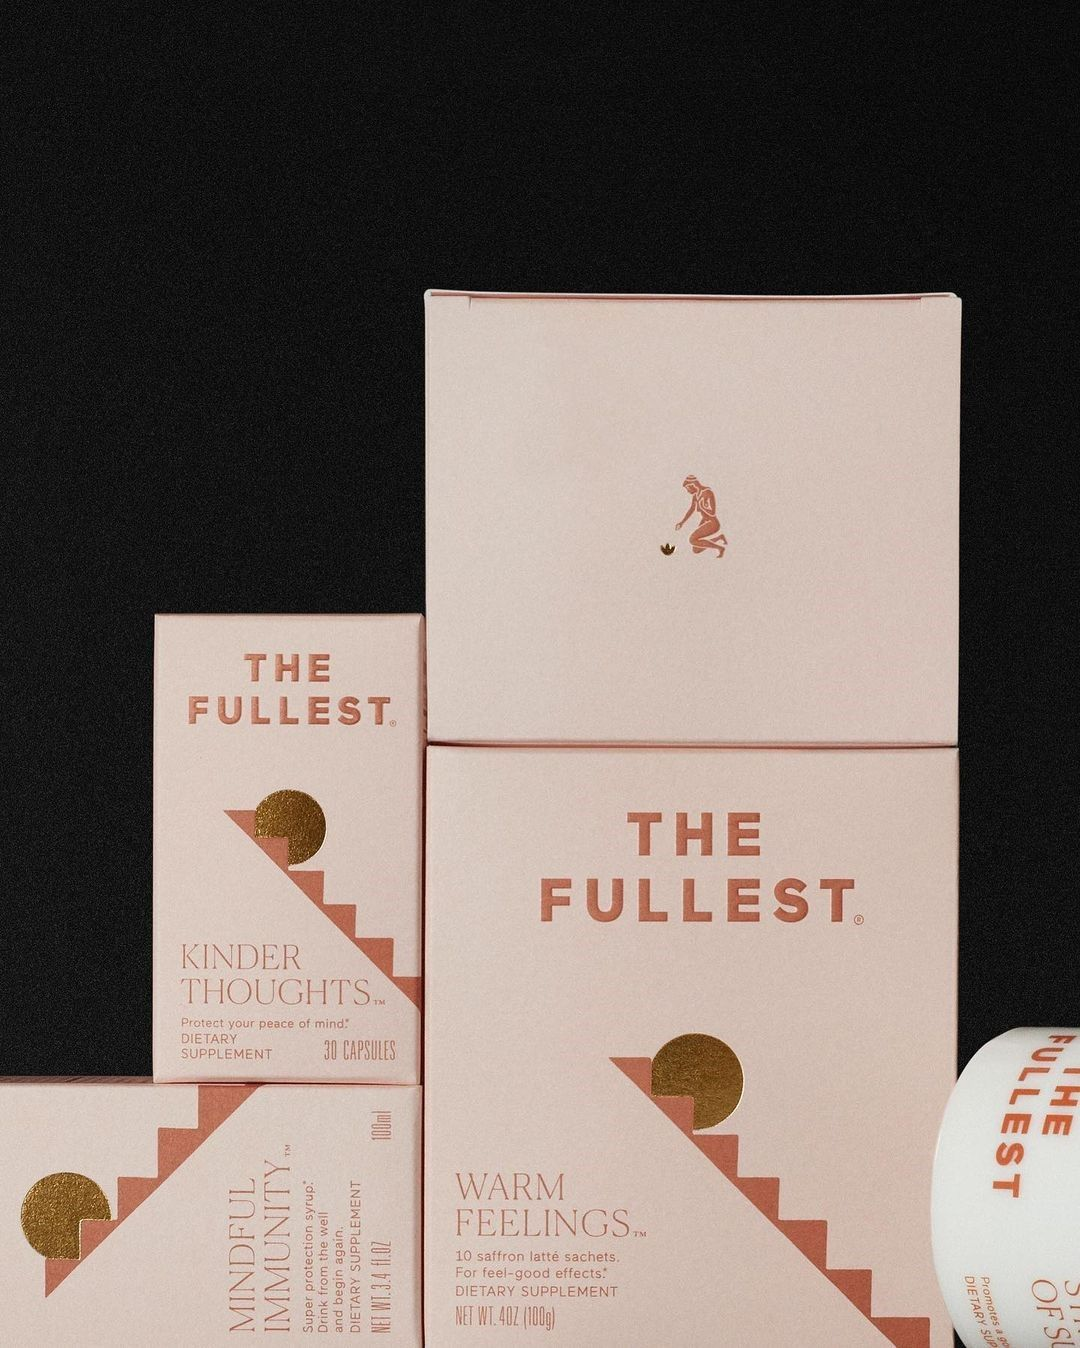 Thumbnail for Studio Lami's Rebrand For THE FULLEST Inspires You to Live, Well, to Your Fullest